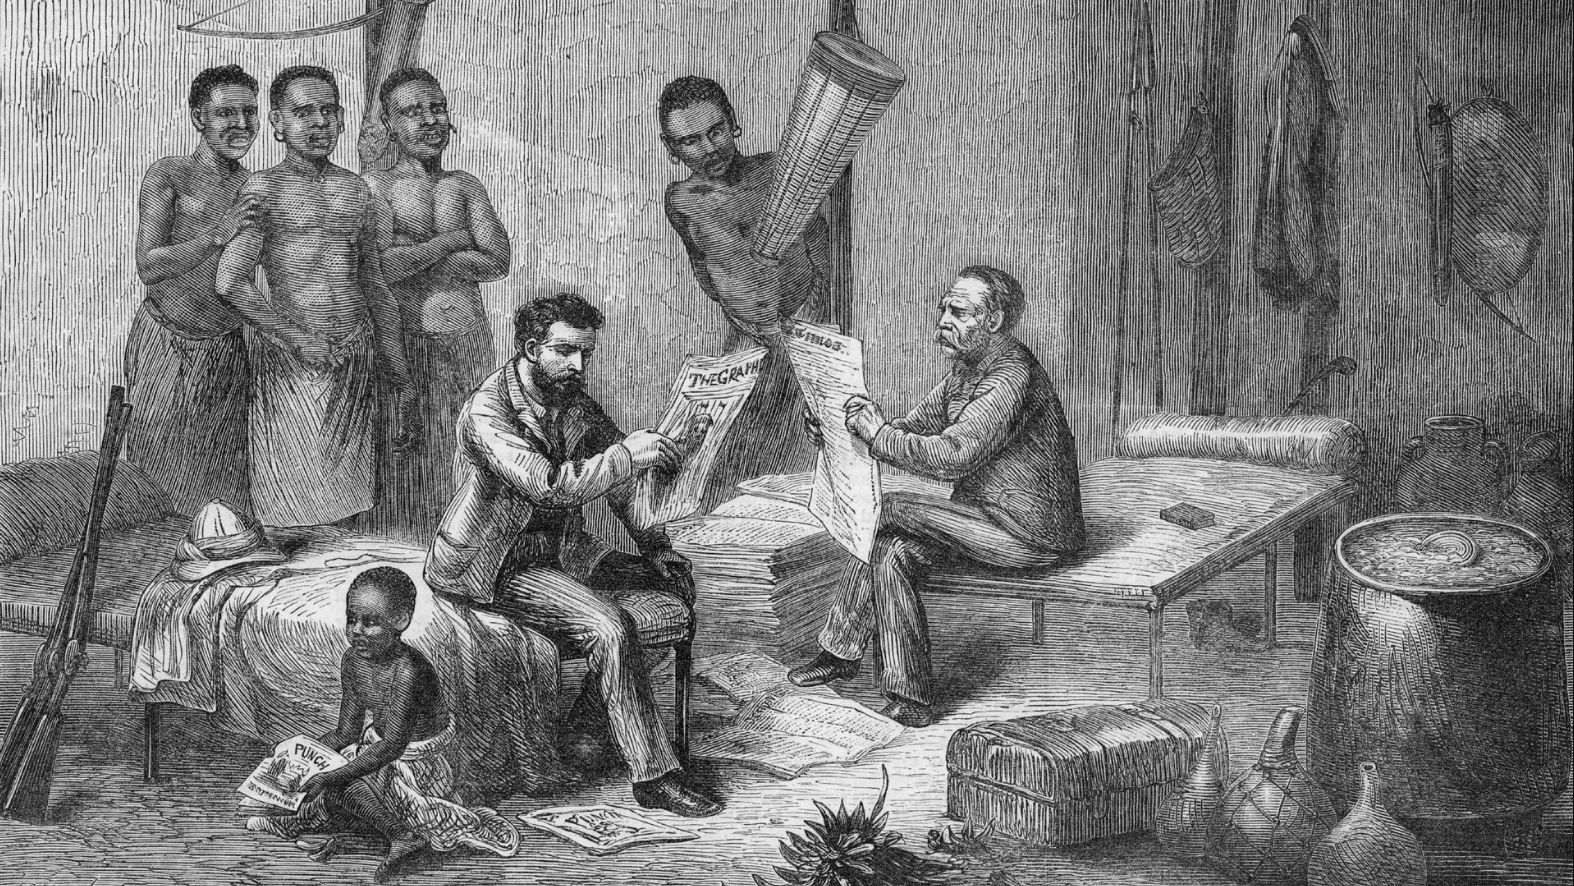 Illustration - David Livingstone and Henry Stanley are depicted reading newspapers during an expedition in central Africa; links to news story